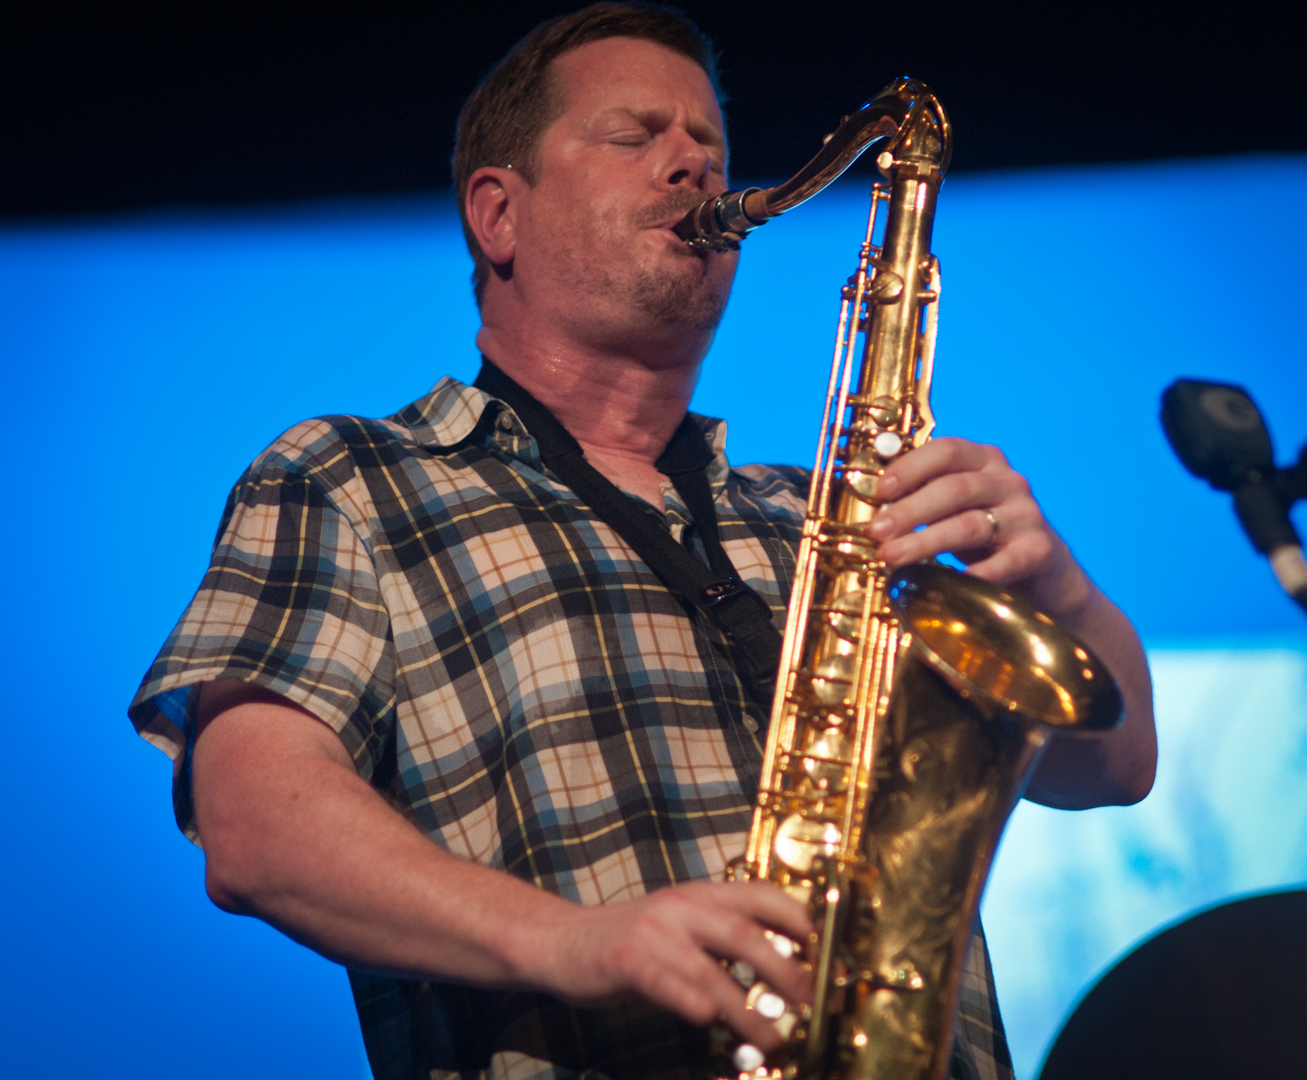 Ken Vandermark with Peter Brotzmann's Quintet at the Vision Festival 2011